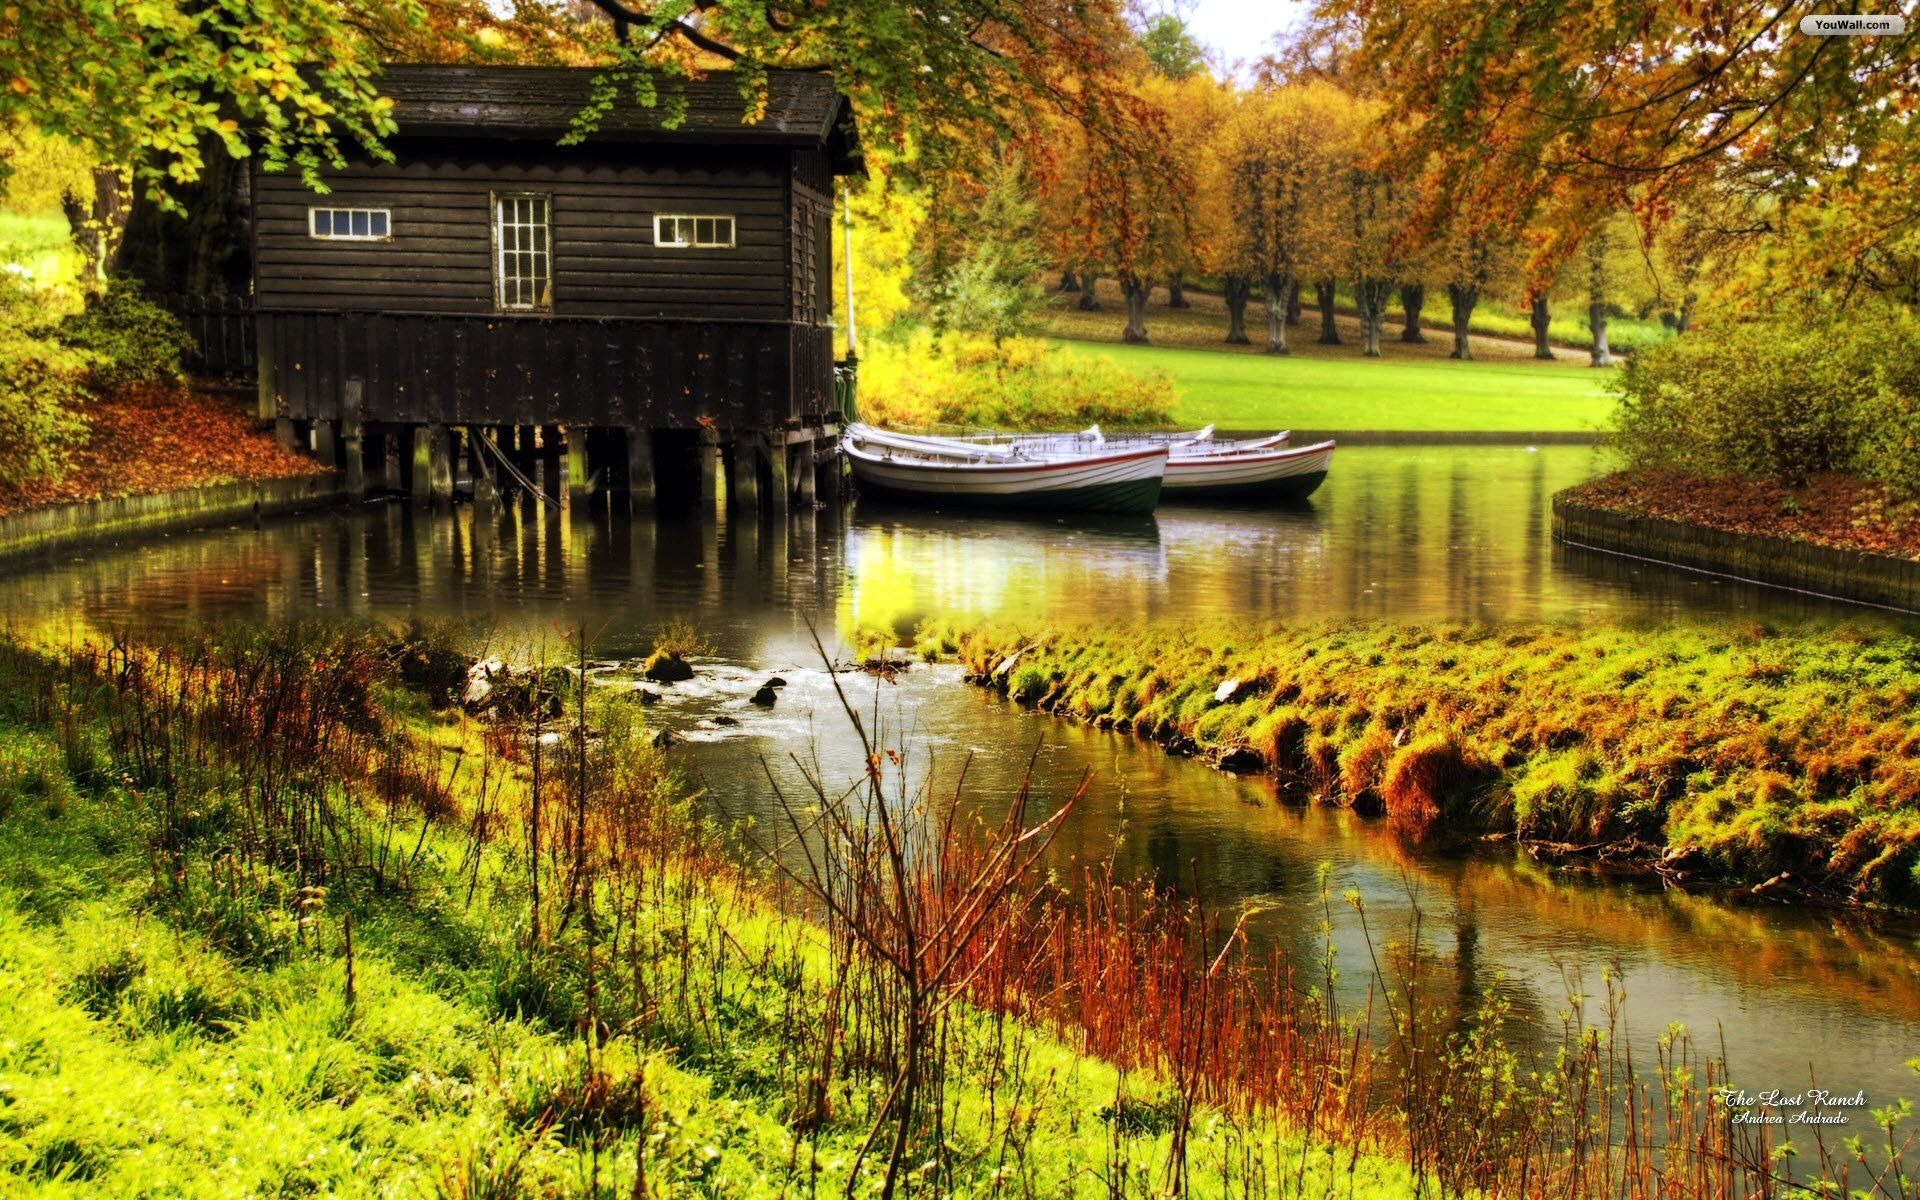 Haus am see wallpaper  White House HD Wallpapers Backgrounds Wallpaper 1024×768 House ...